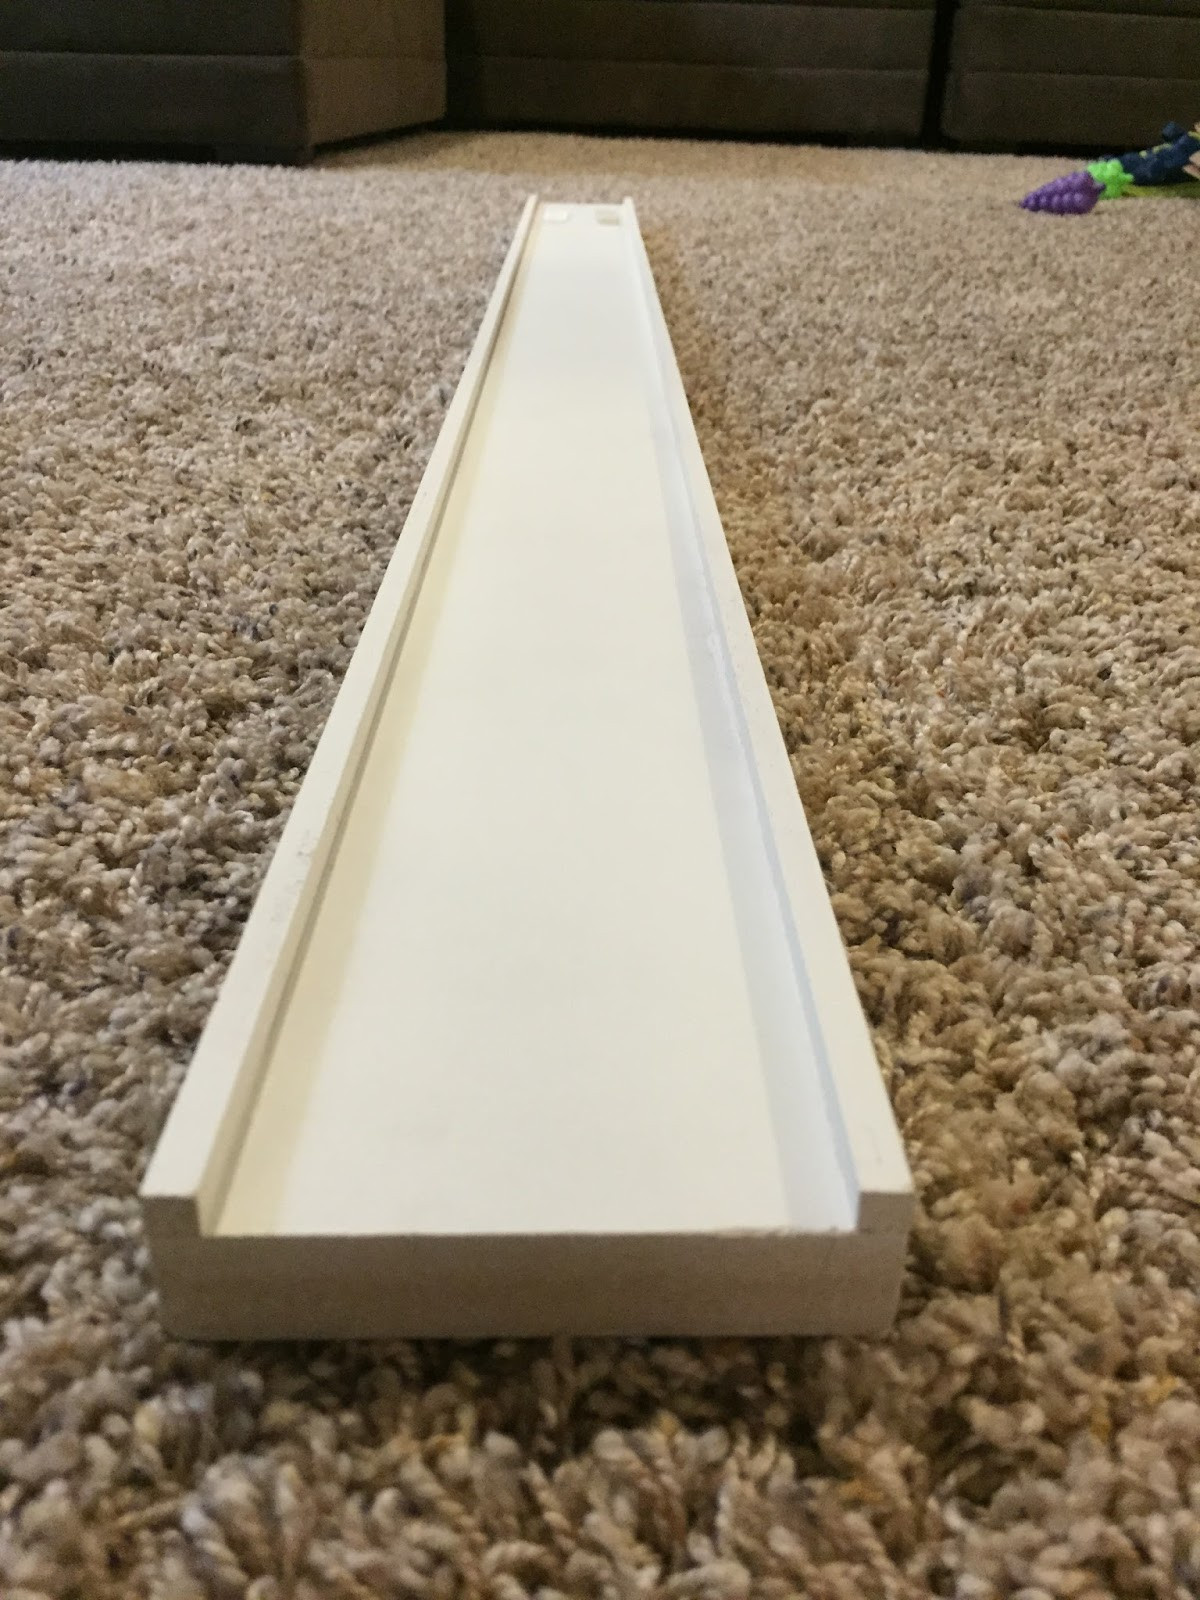 Best ideas about DIY Hot Wheels Track . Save or Pin Hot Wheels Racing League How To Build a Hot Wheels Shelf Now.